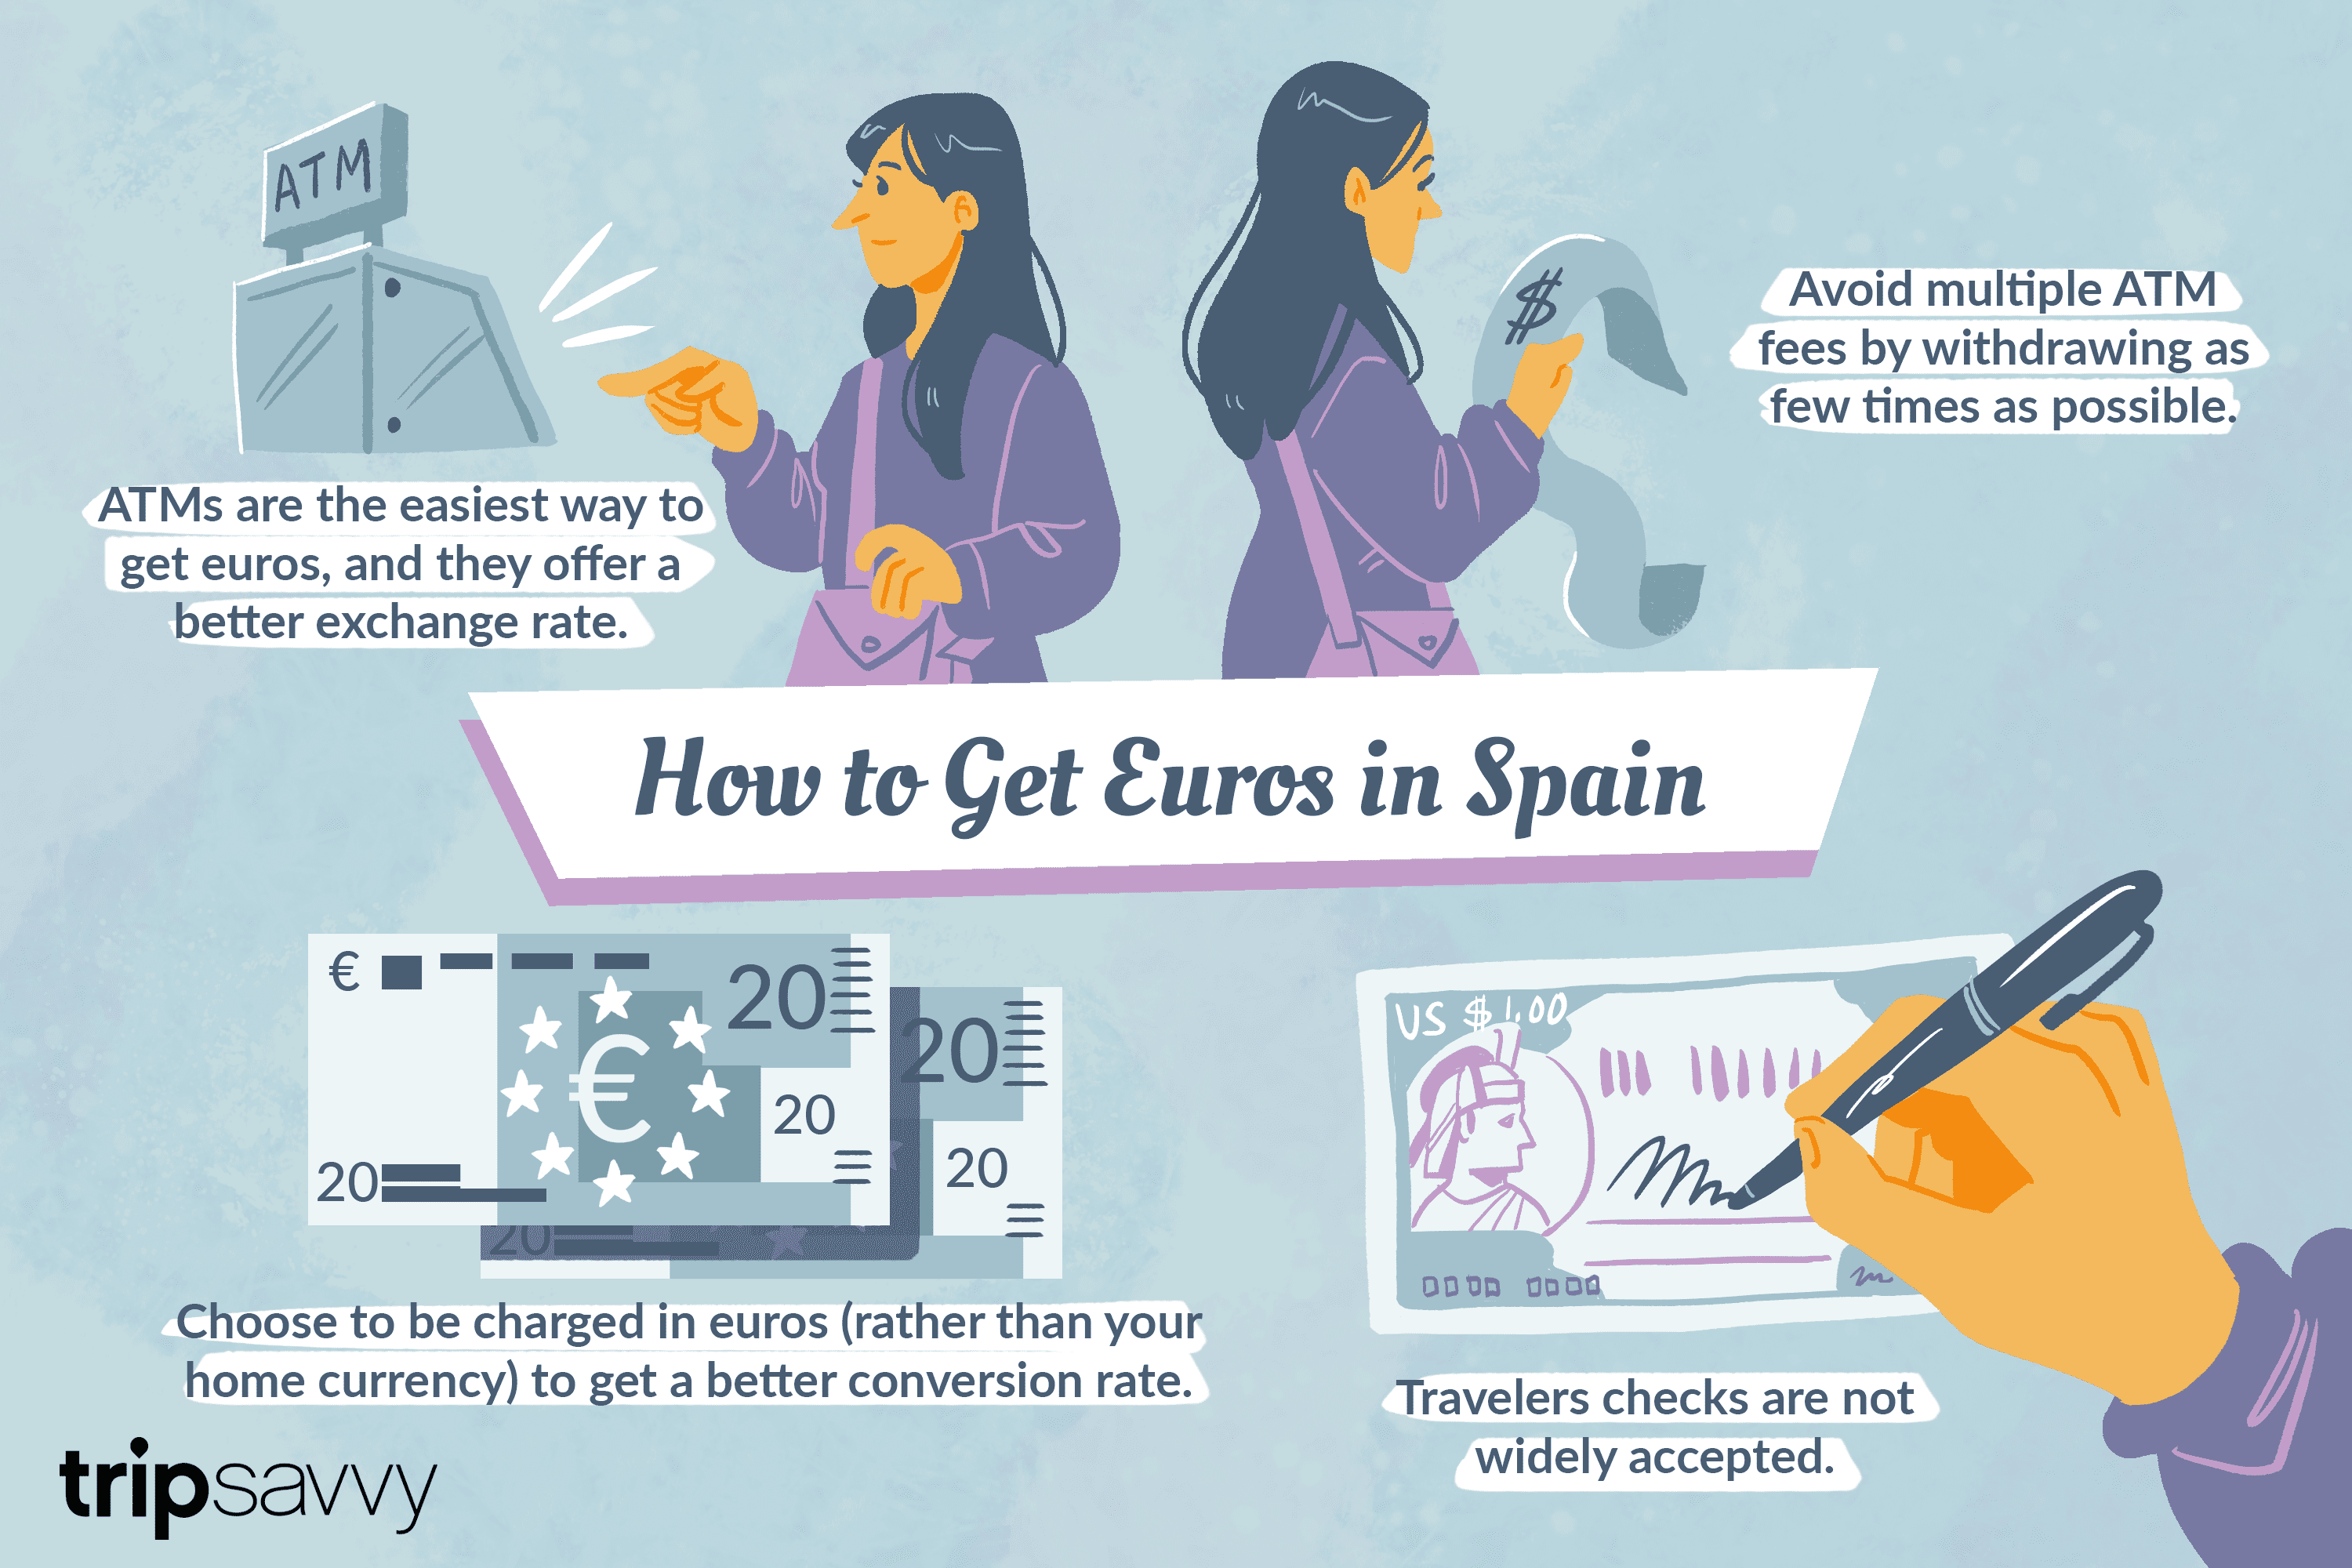 How to Get Euros on Your Trip to Spain